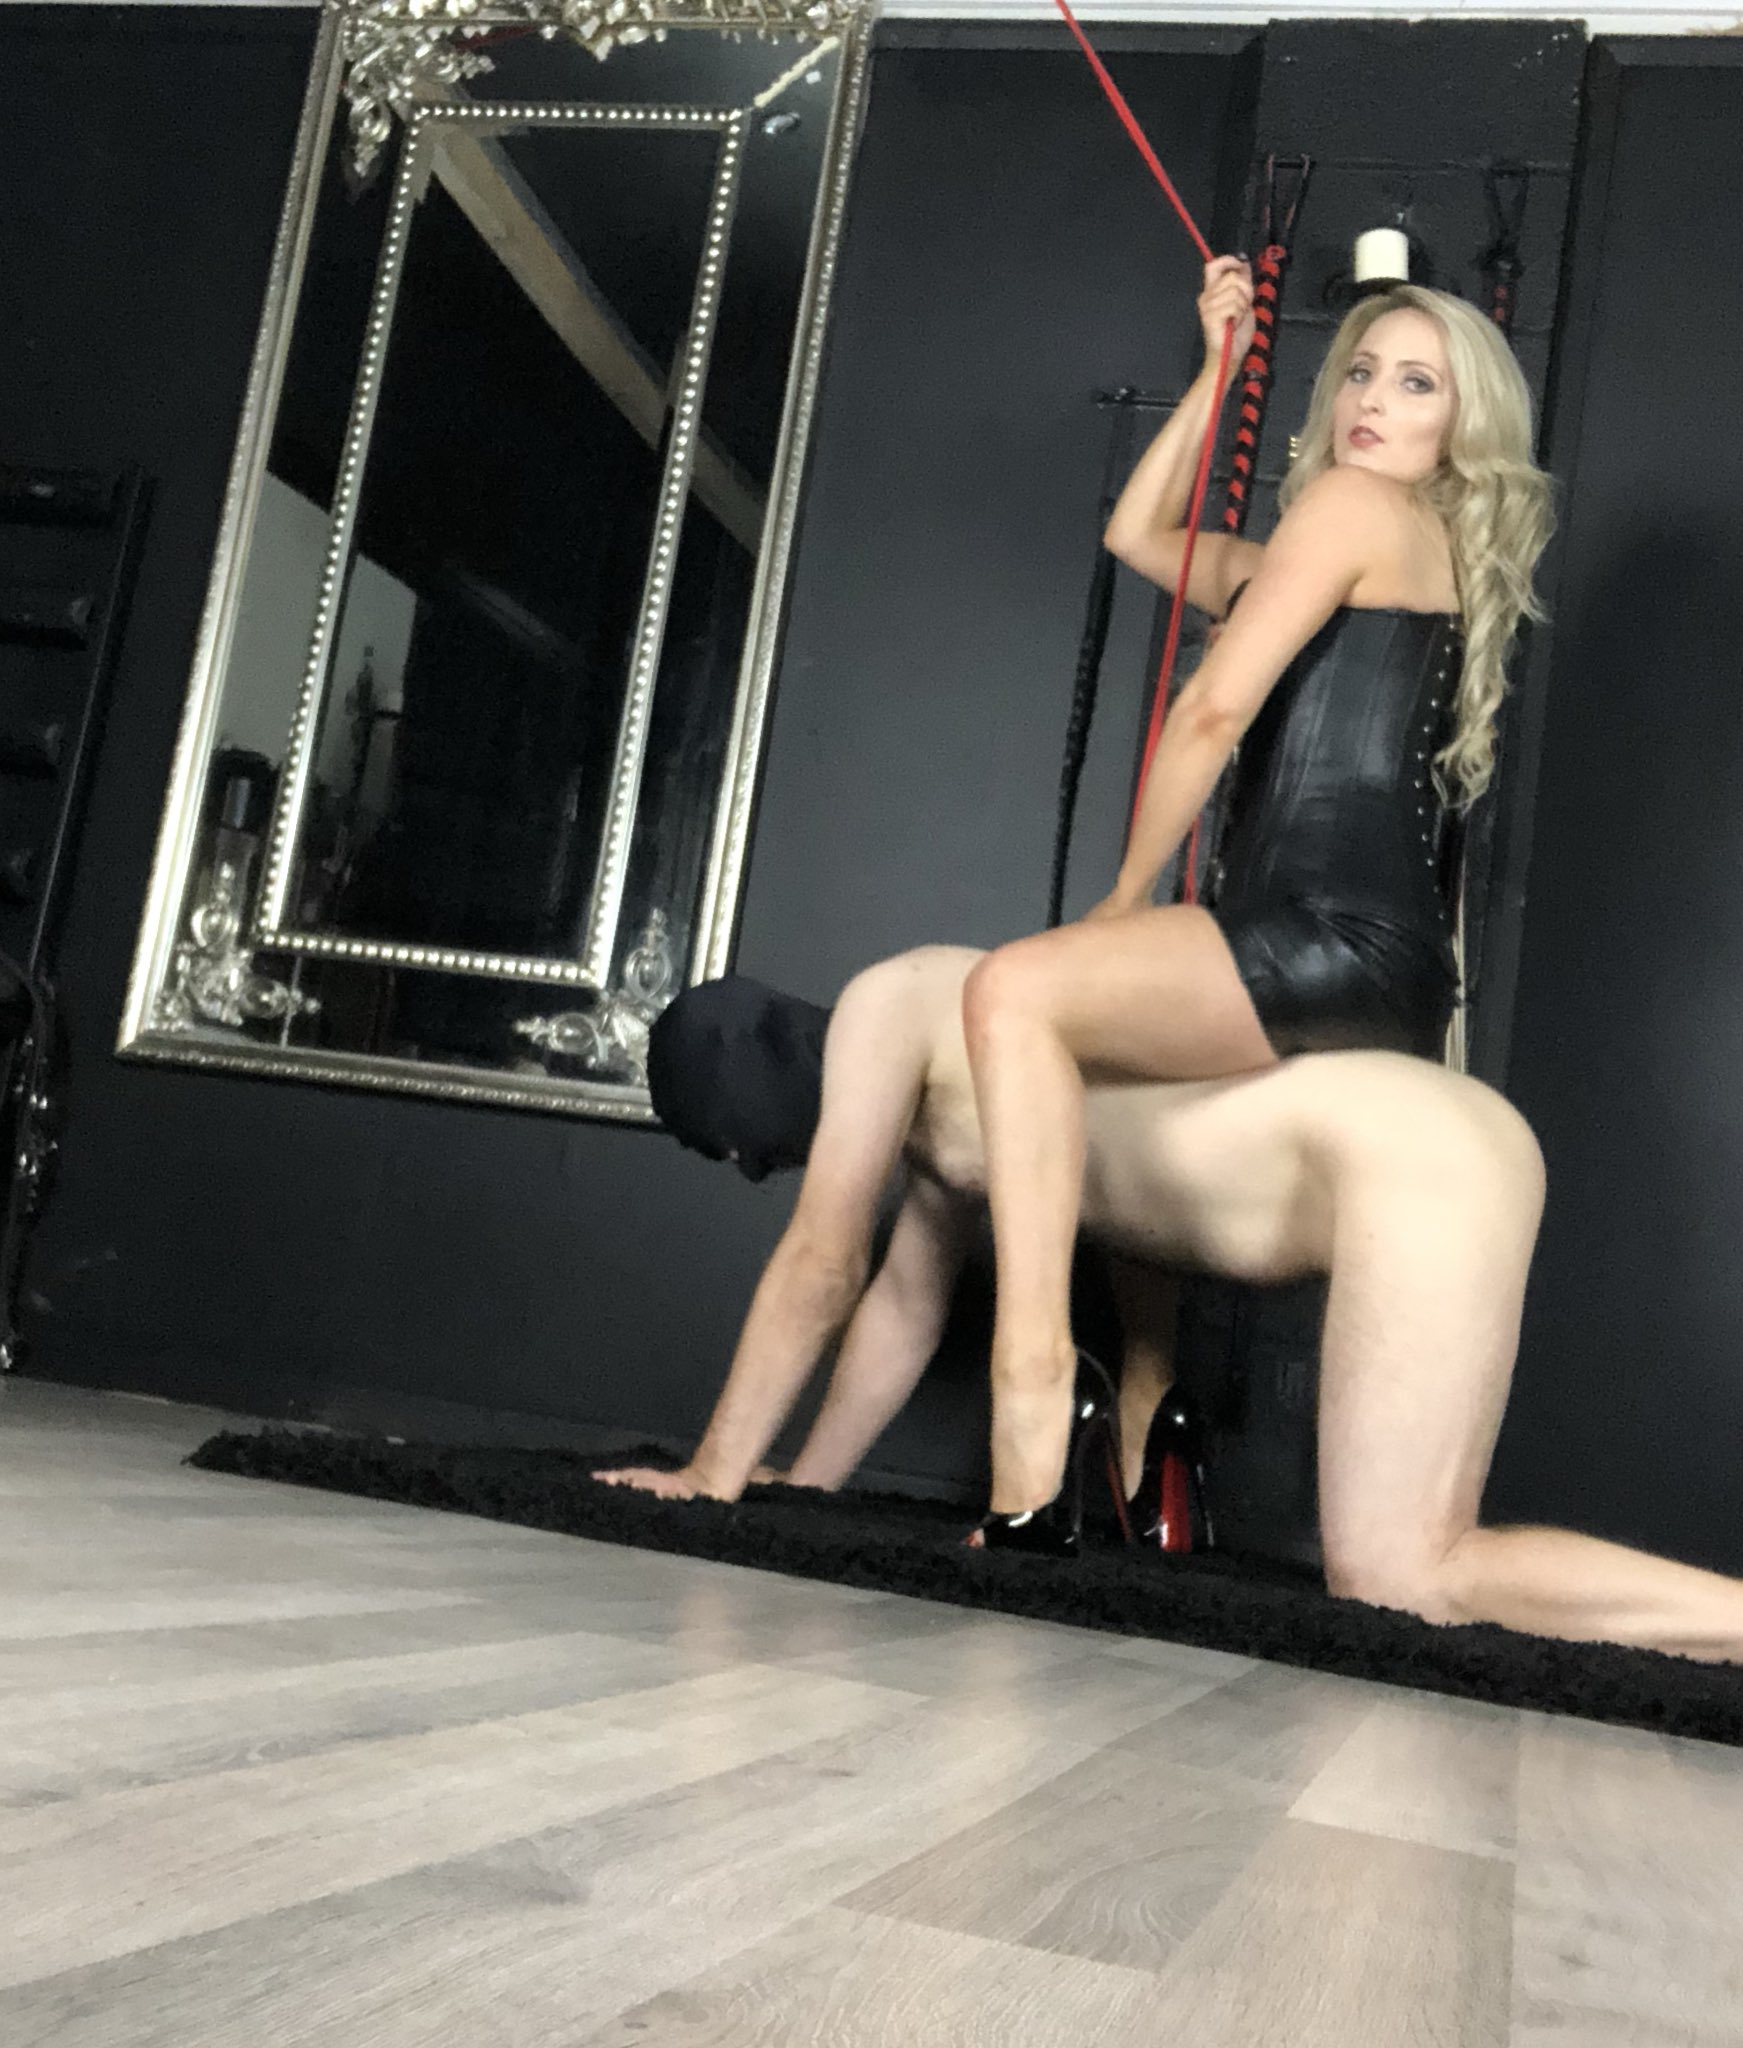 Mistress Courtney 💋 on Twitter: Filming with My owned boy